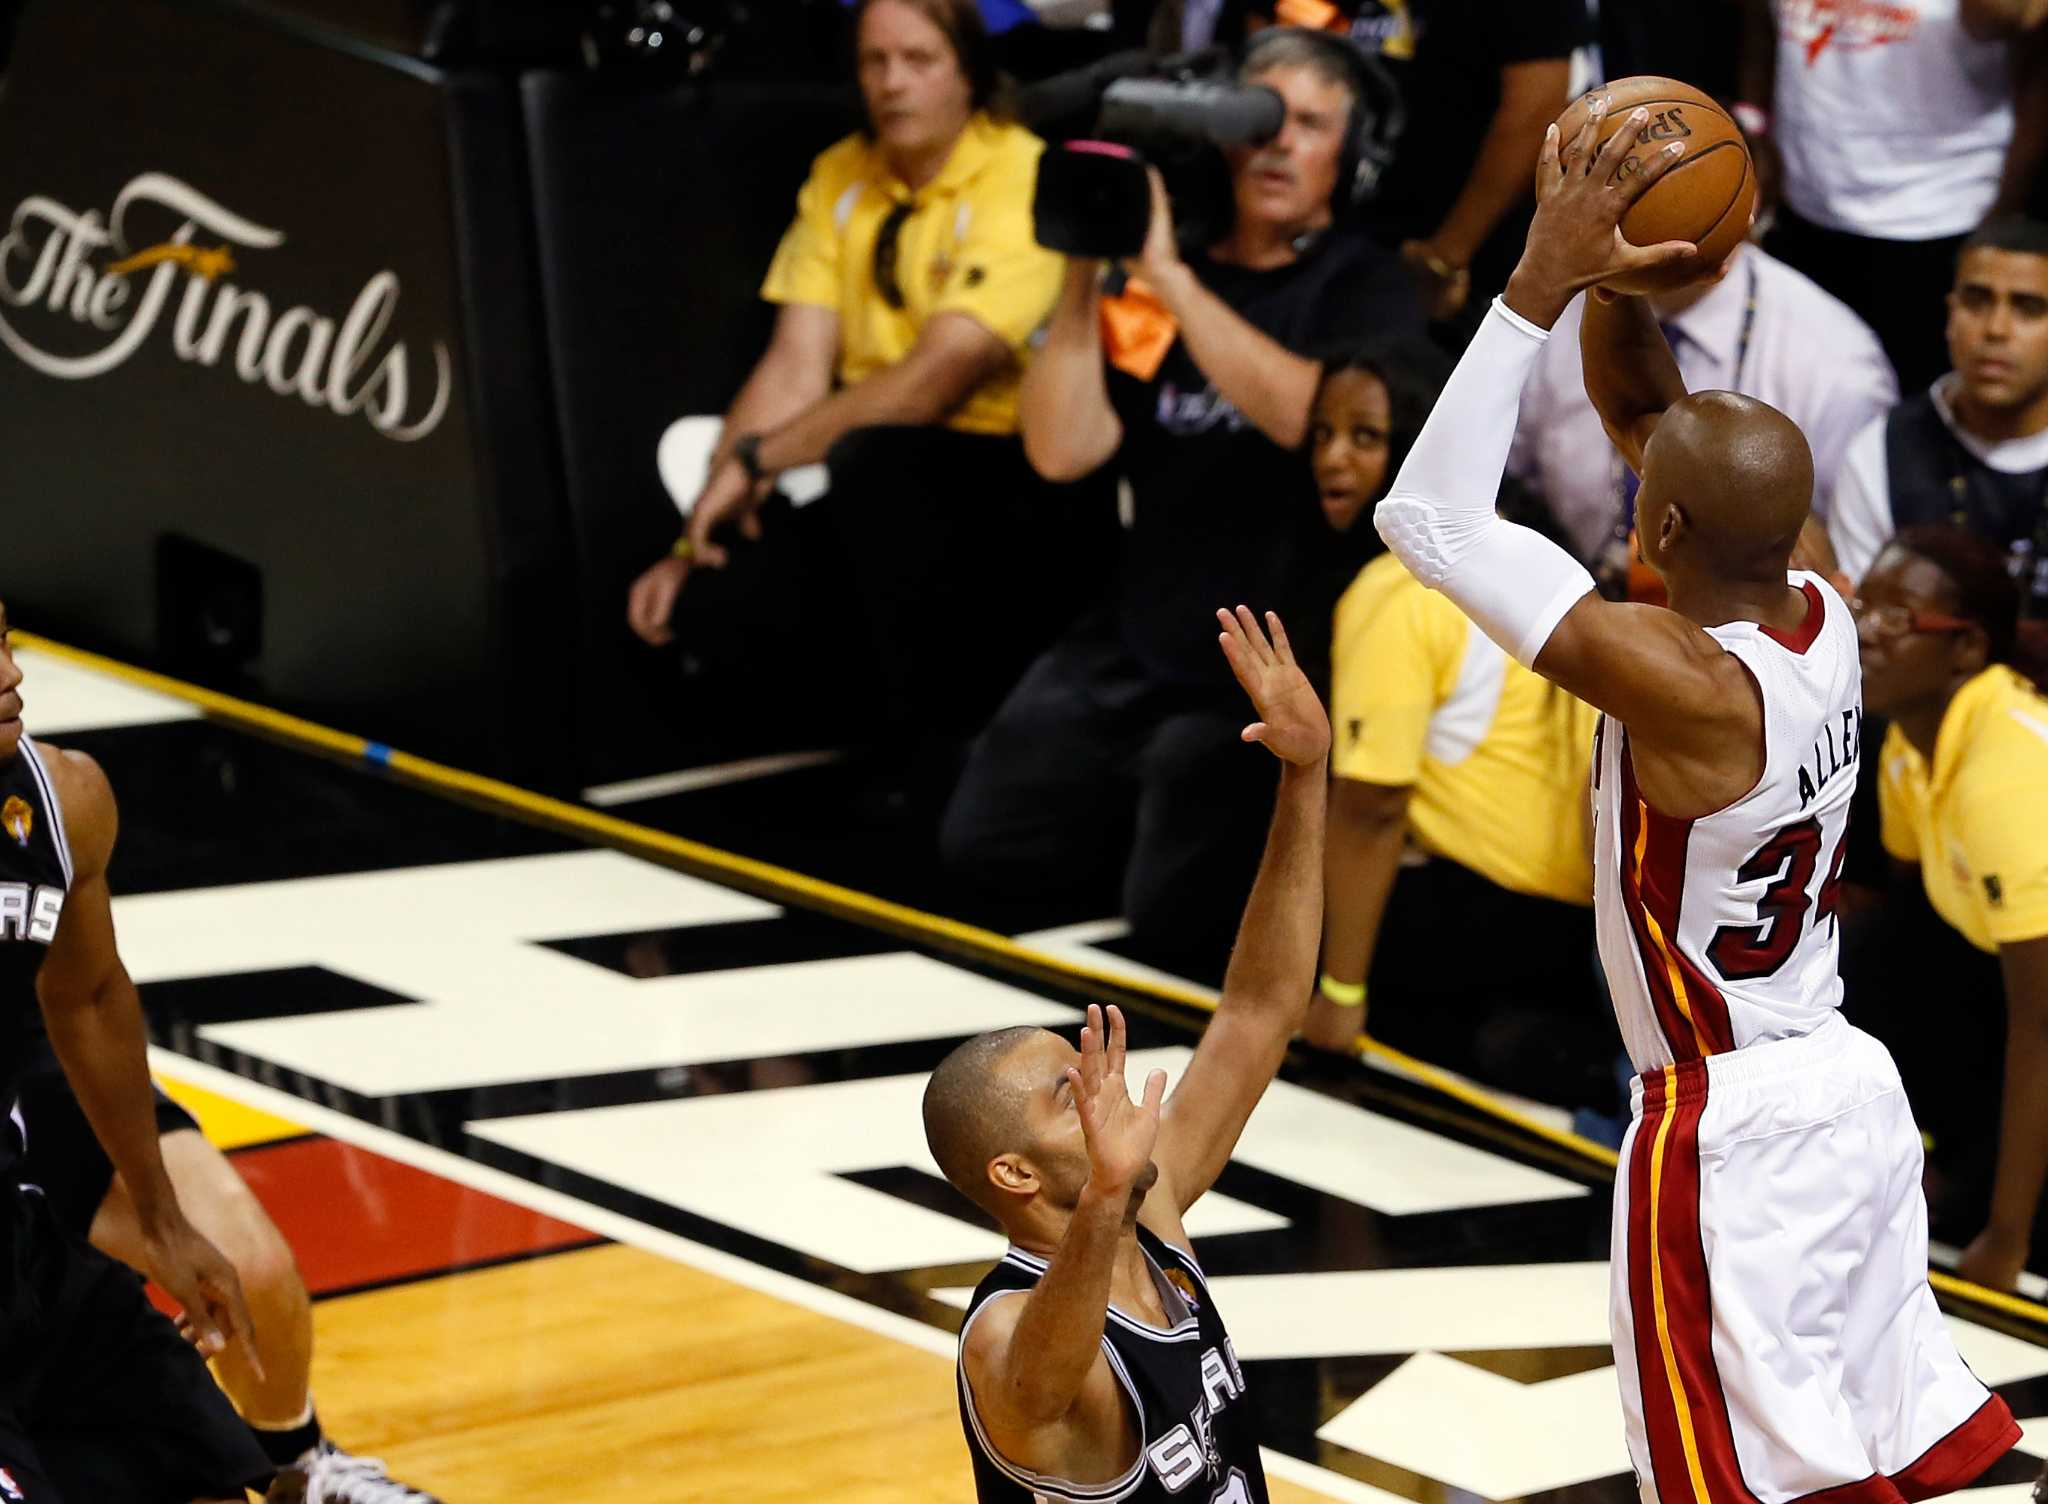 Mi miami heat game tonight tv channel - Referee Crawford Thankful Spurs Didn T Score After Ray Allen S Game 6 3 Pointer San Antonio Express News